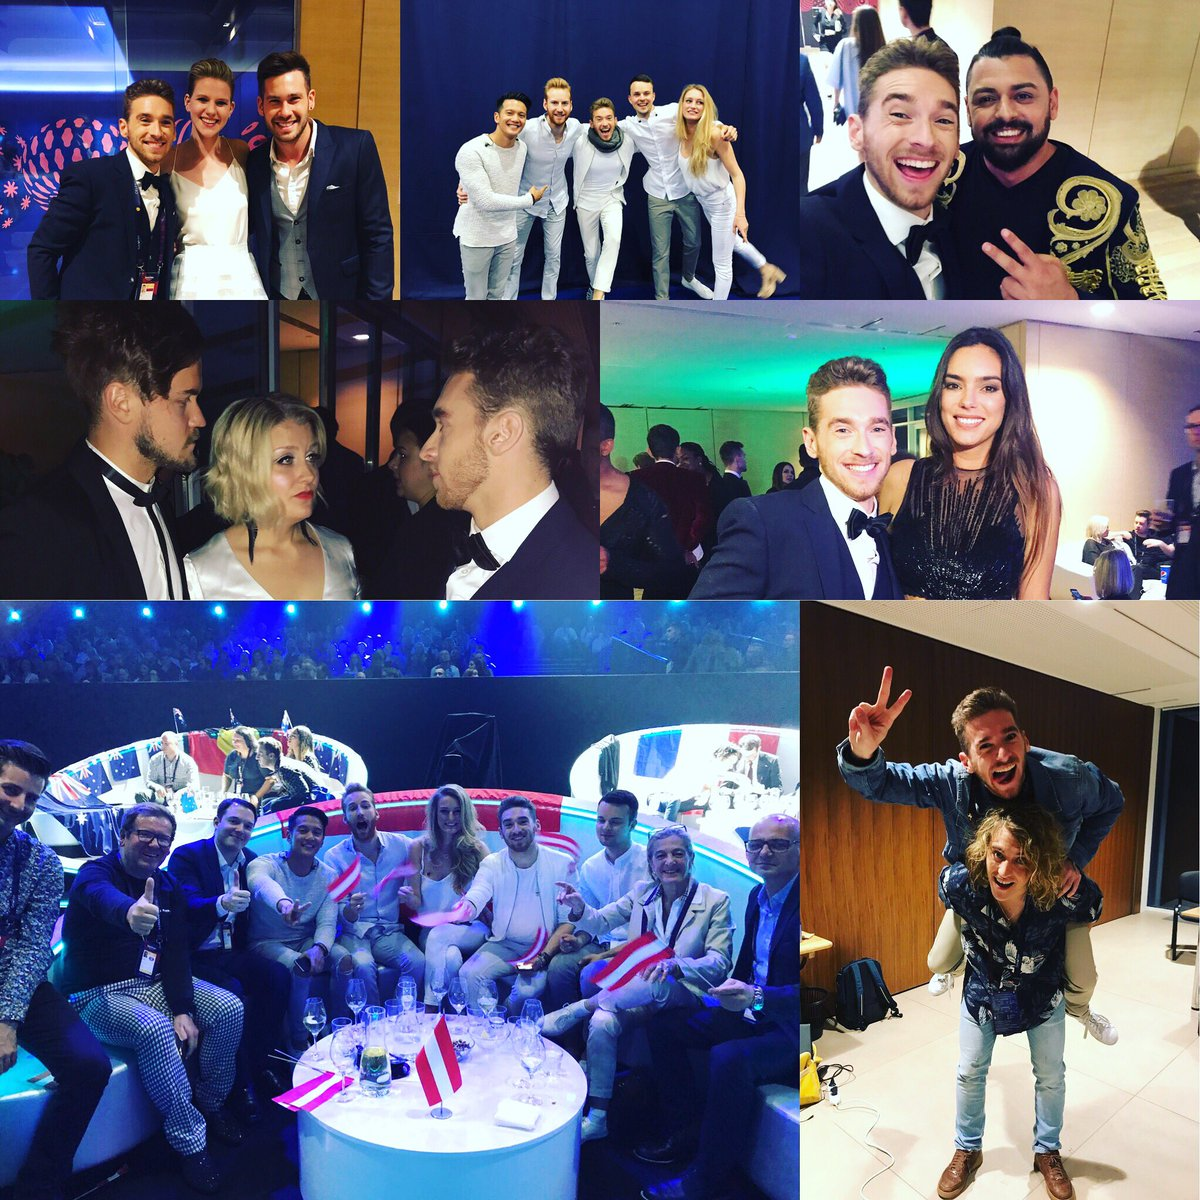 Such great memories #eurovision  <br>http://pic.twitter.com/54cipllgoF